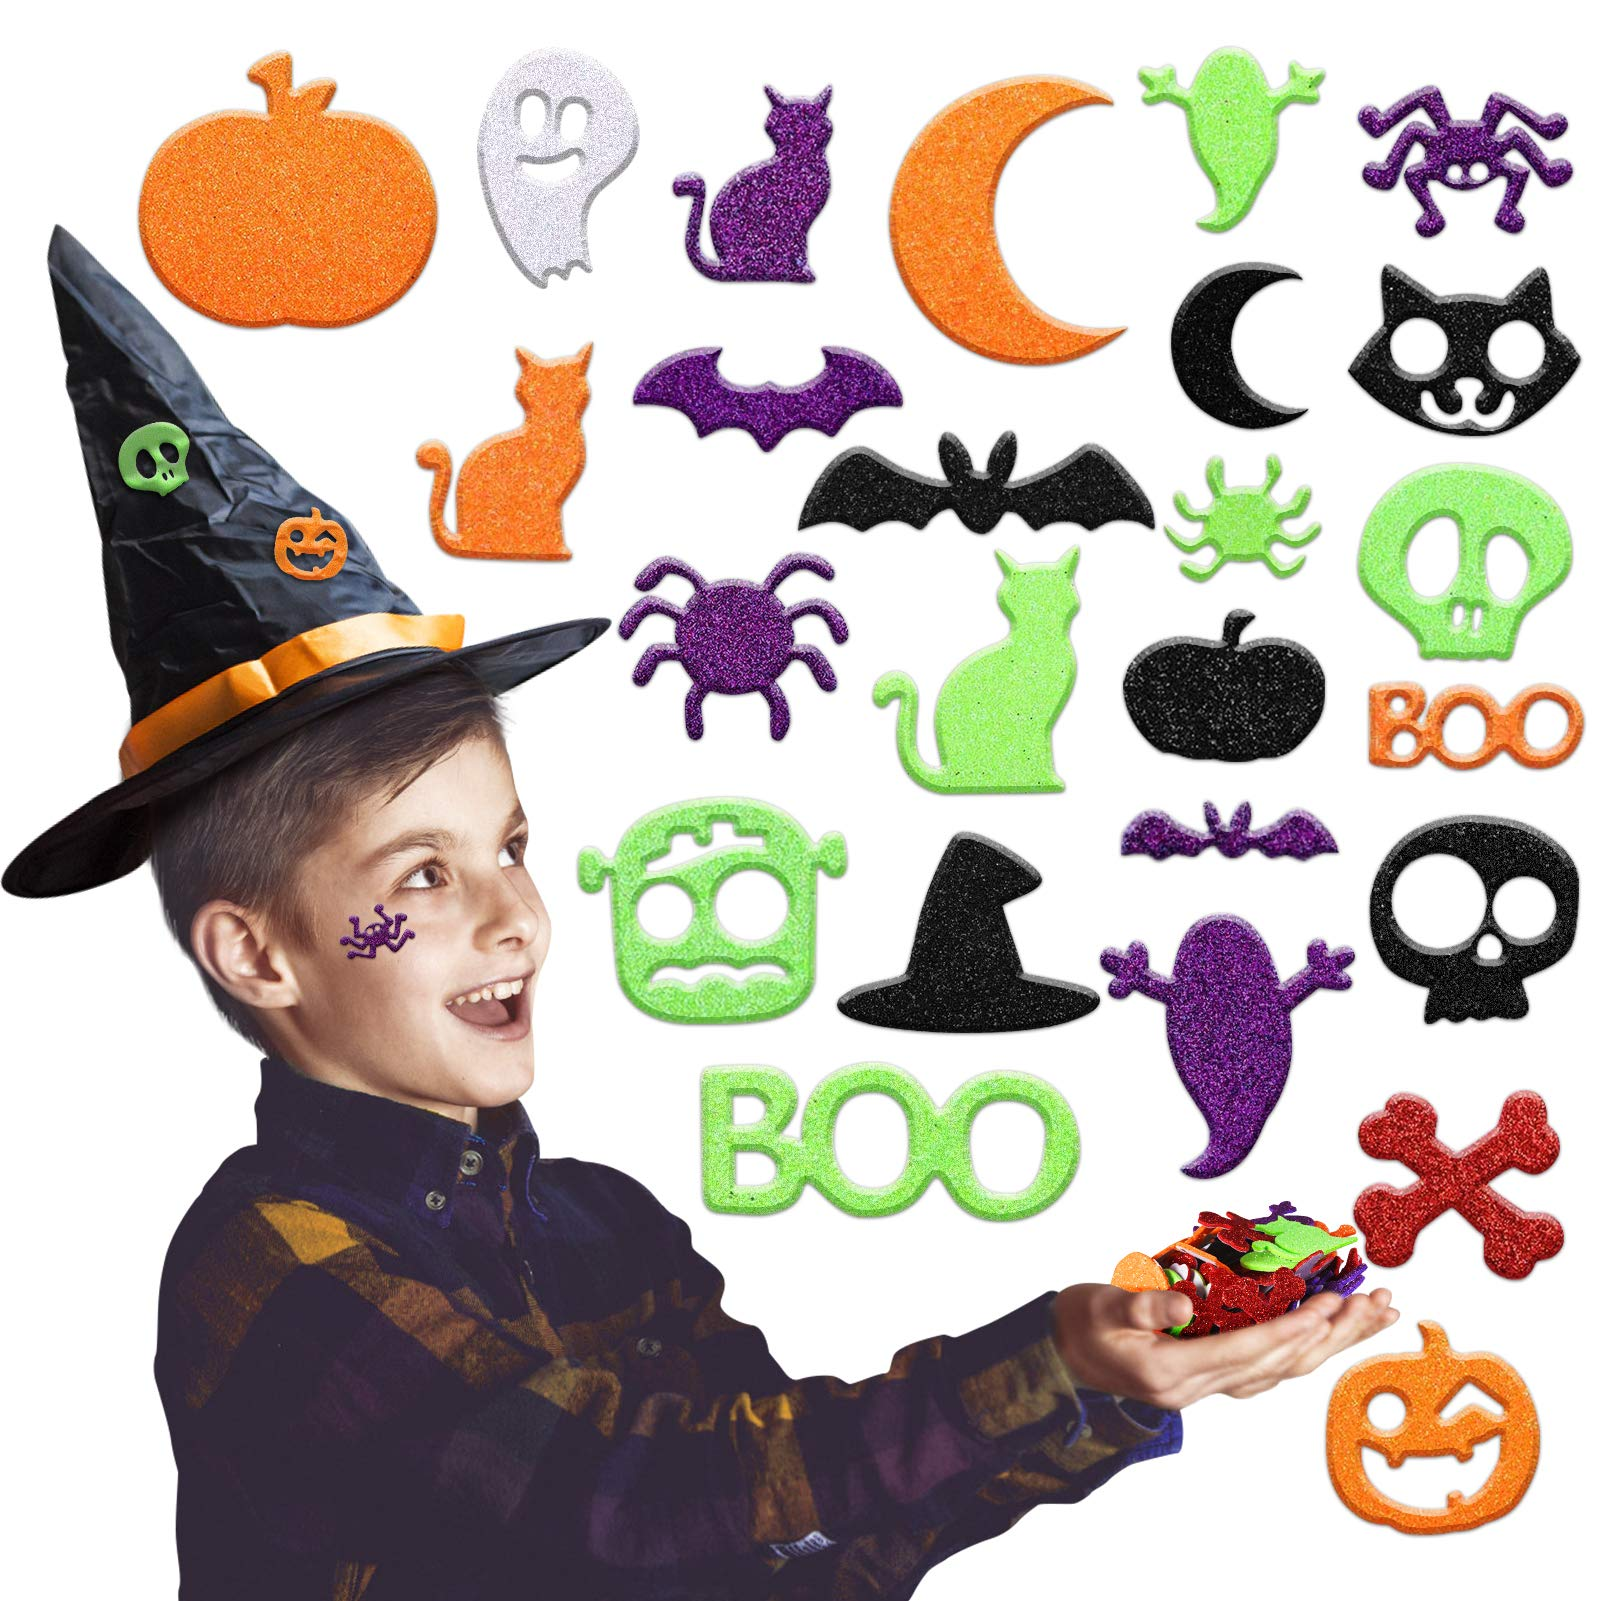 500PCS Glitter Halloween Foam Craft Stickers, Self Adhesive Pumpkin Shape 3D Stickers for Pumpkin Decor, Trick or Treat Bags, Cards, Scrapbook, Kids Craft Projects